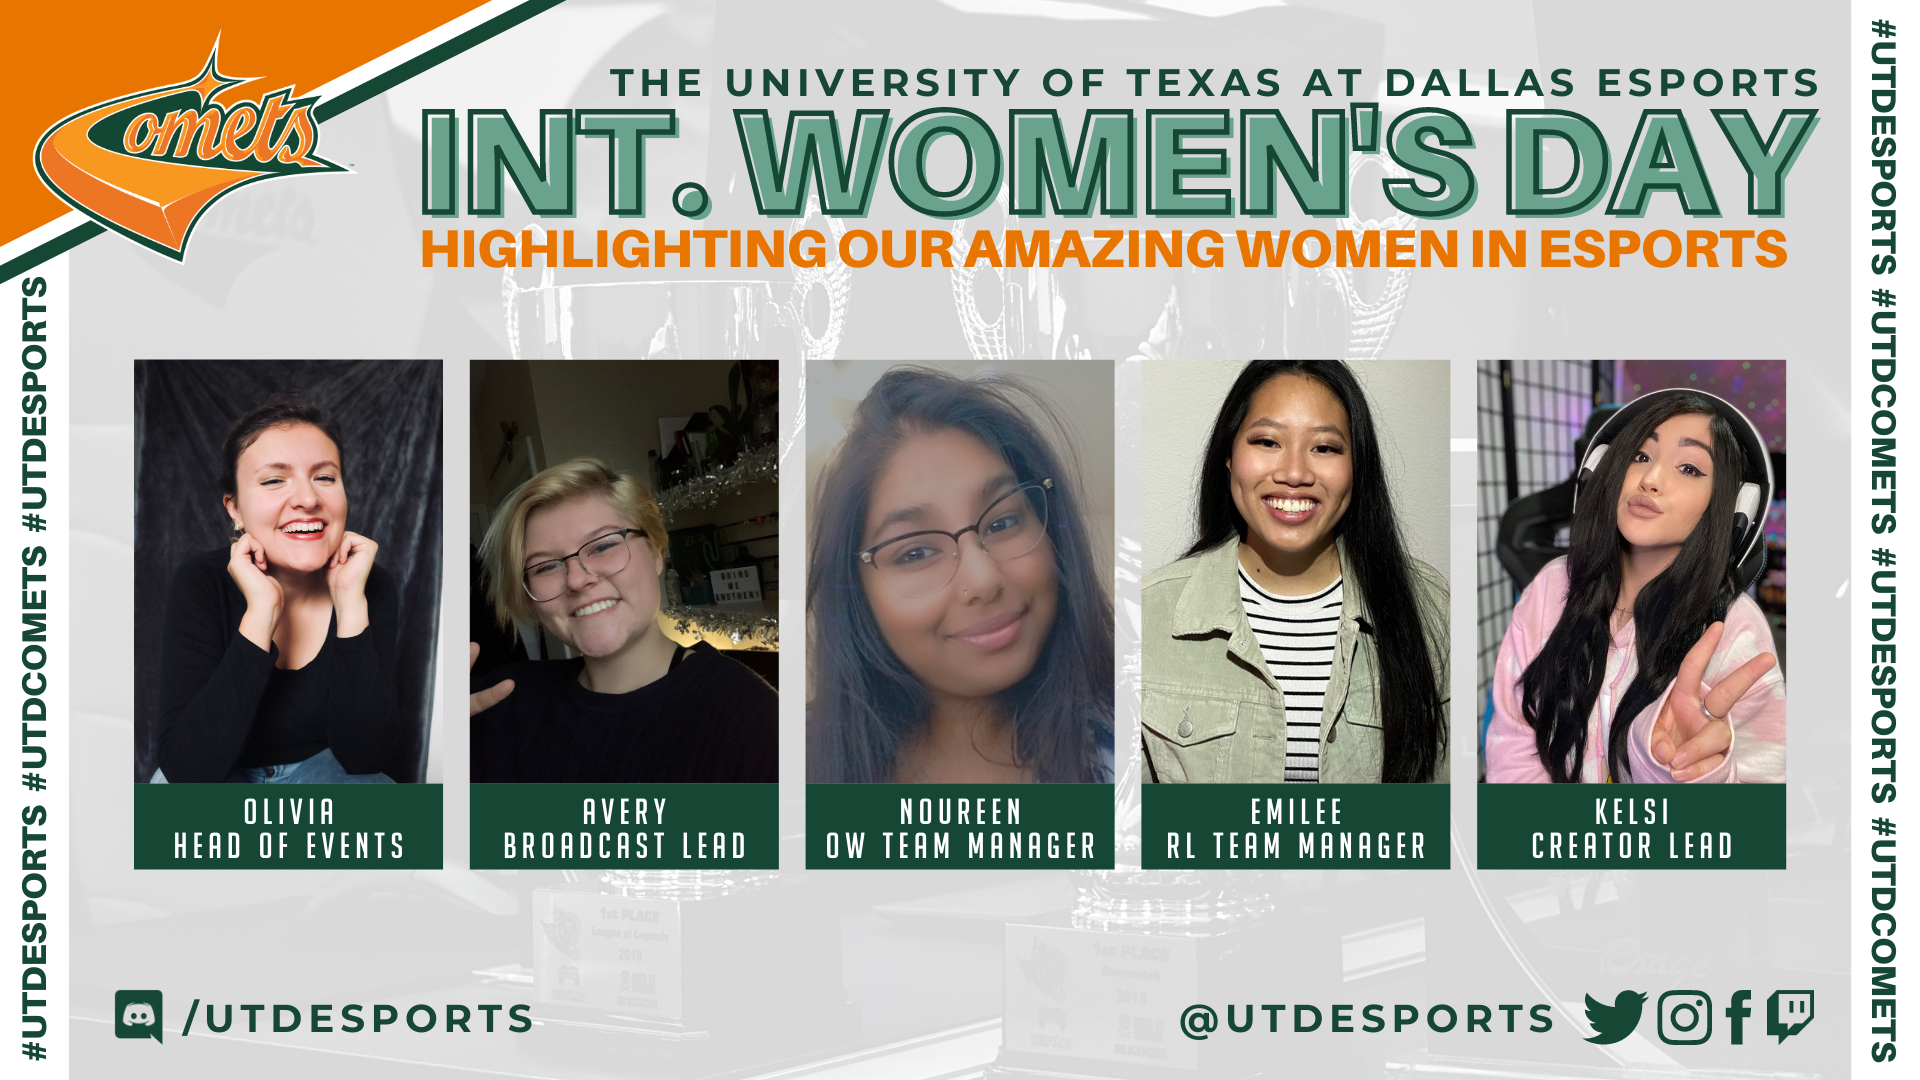 Highlighting Our Amazing Women in Esports